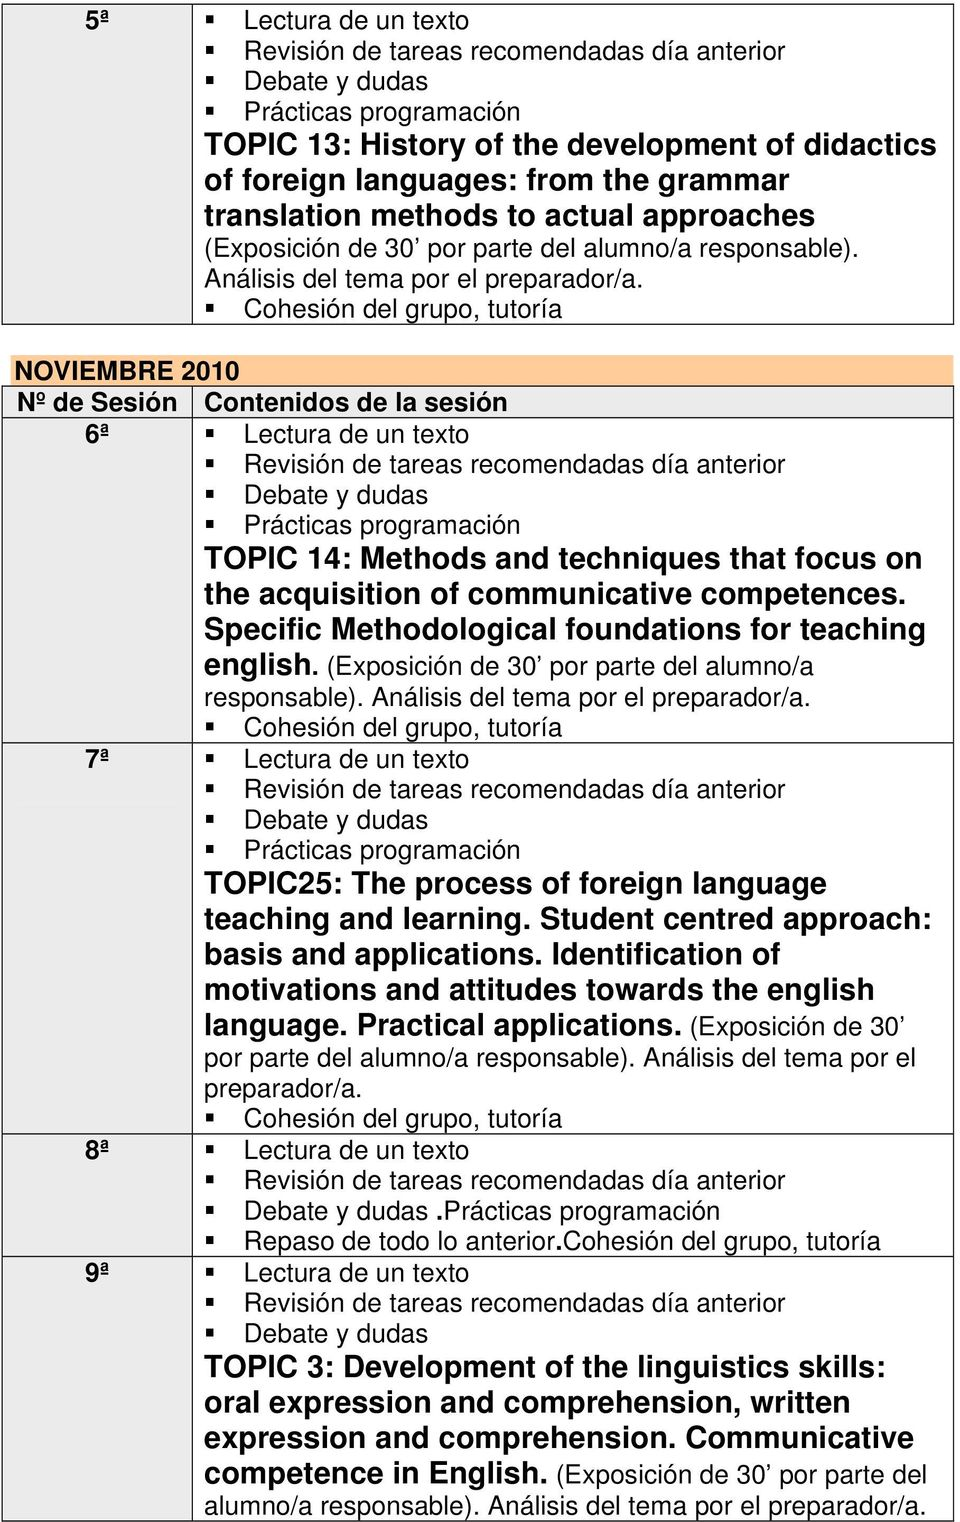 7ª Lectura de un texto TOPIC25: The process of foreign language teaching and learning. Student centred approach: basis and applications.